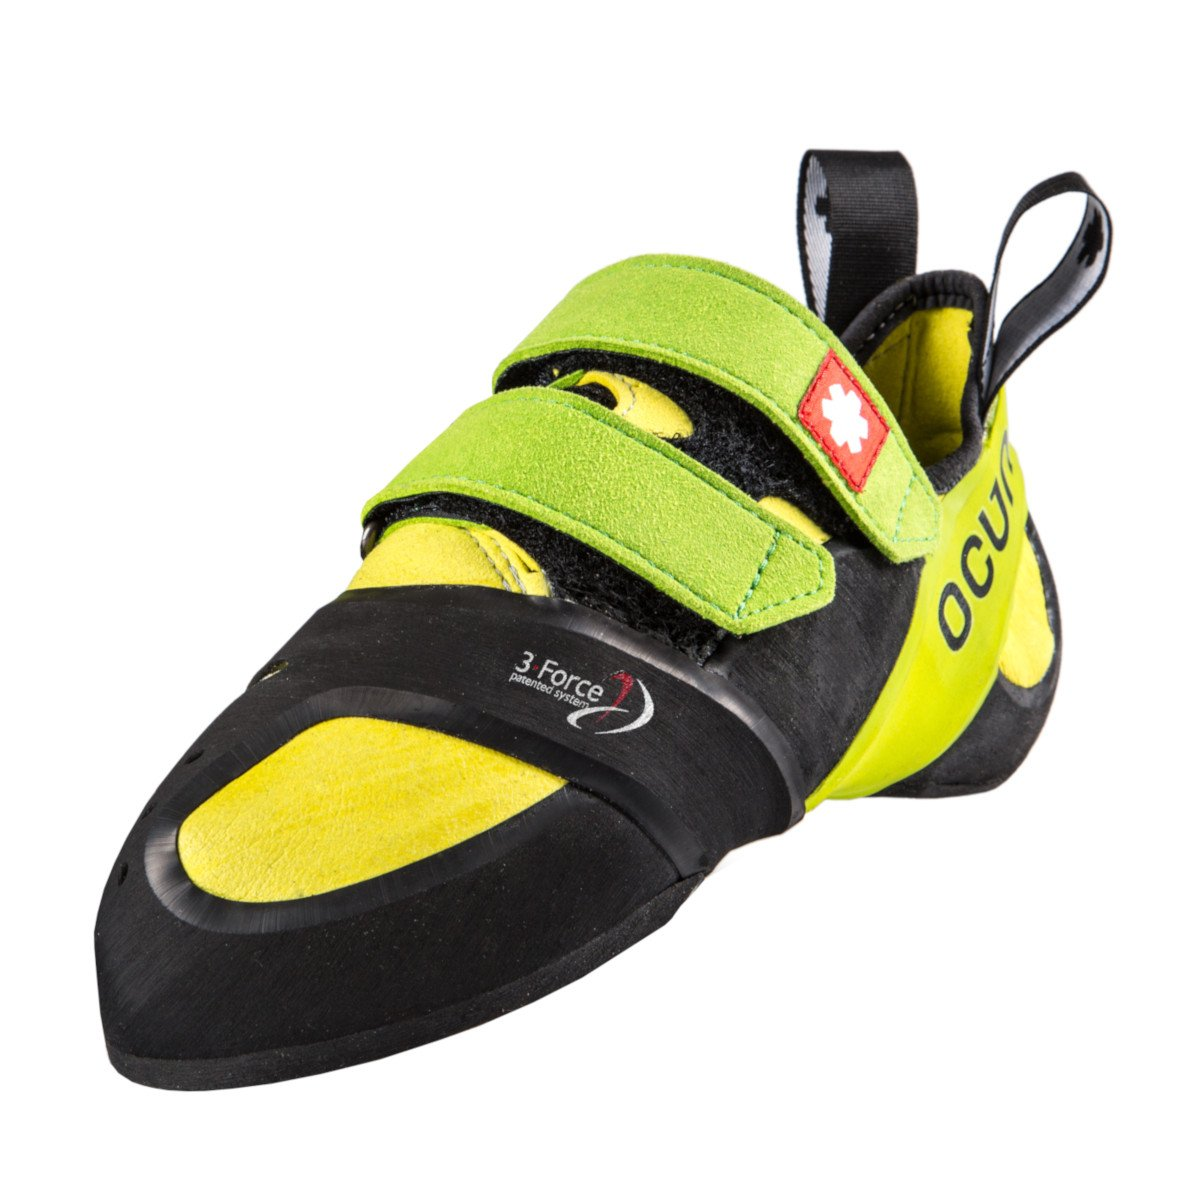 Ocun Ozone Plus climbing shoe, in black, green and yellow colours